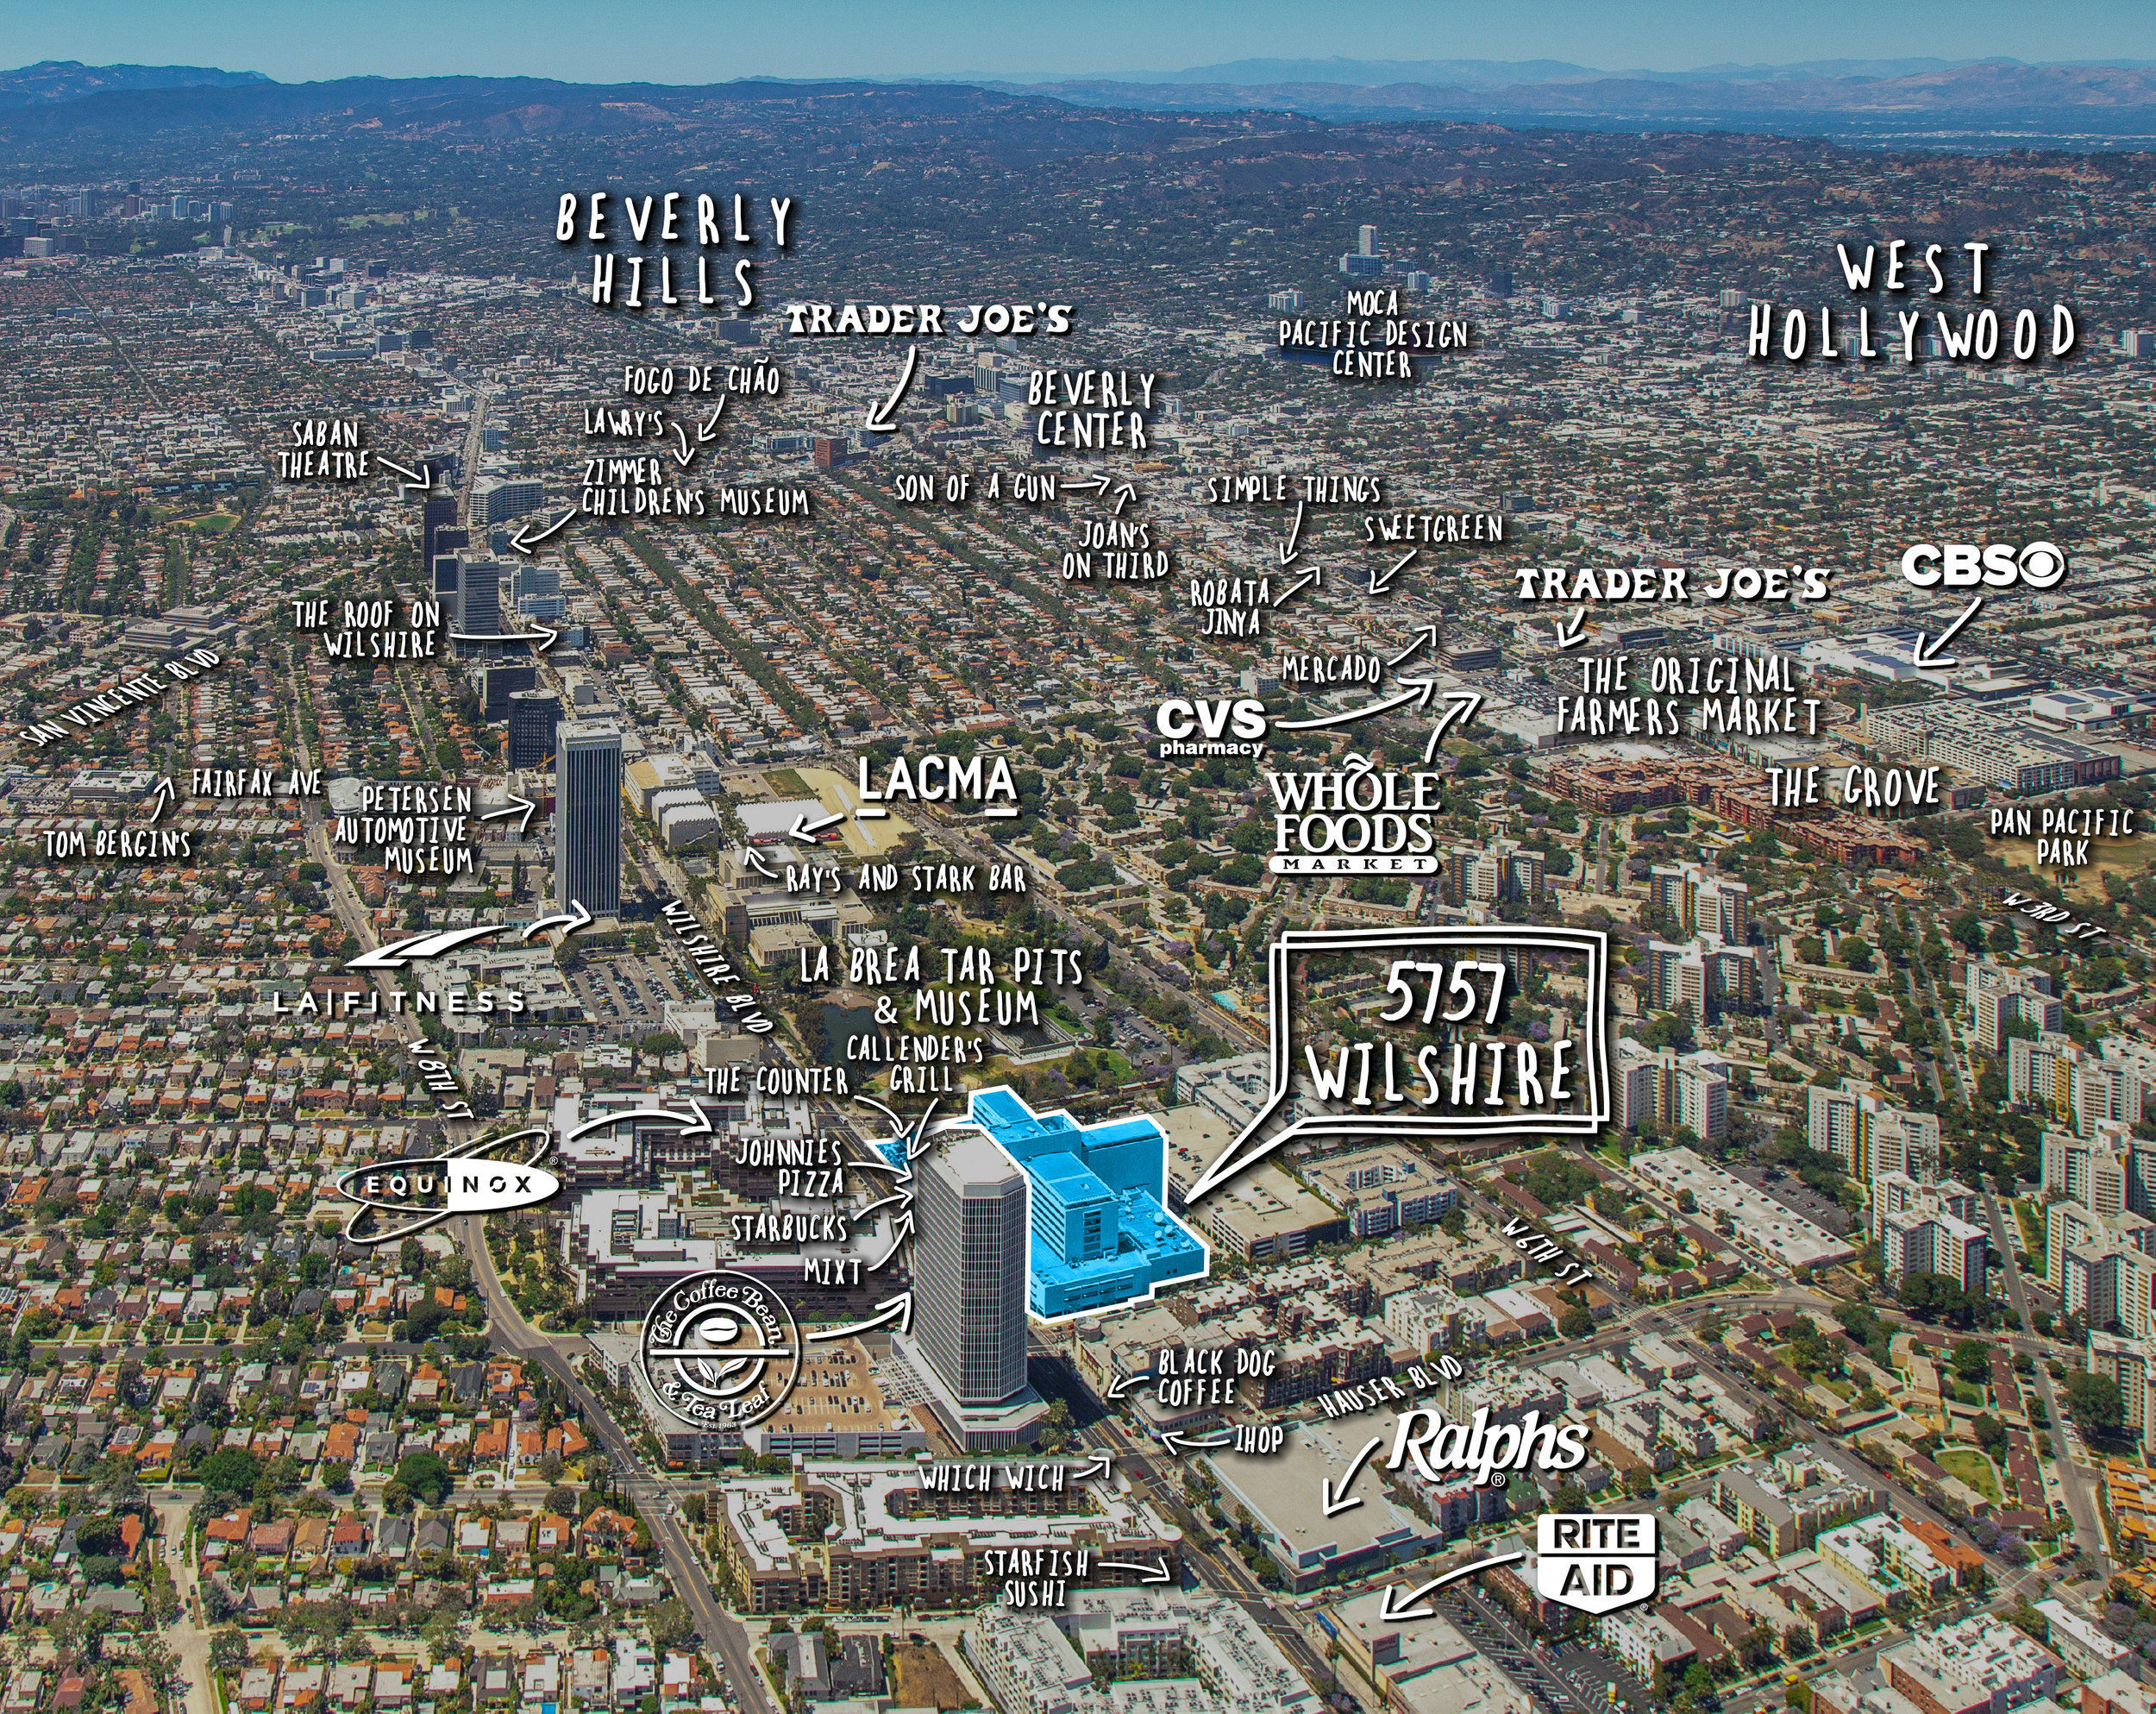 Los Angeles CA Illustrative Logo Aerial Map.jpg